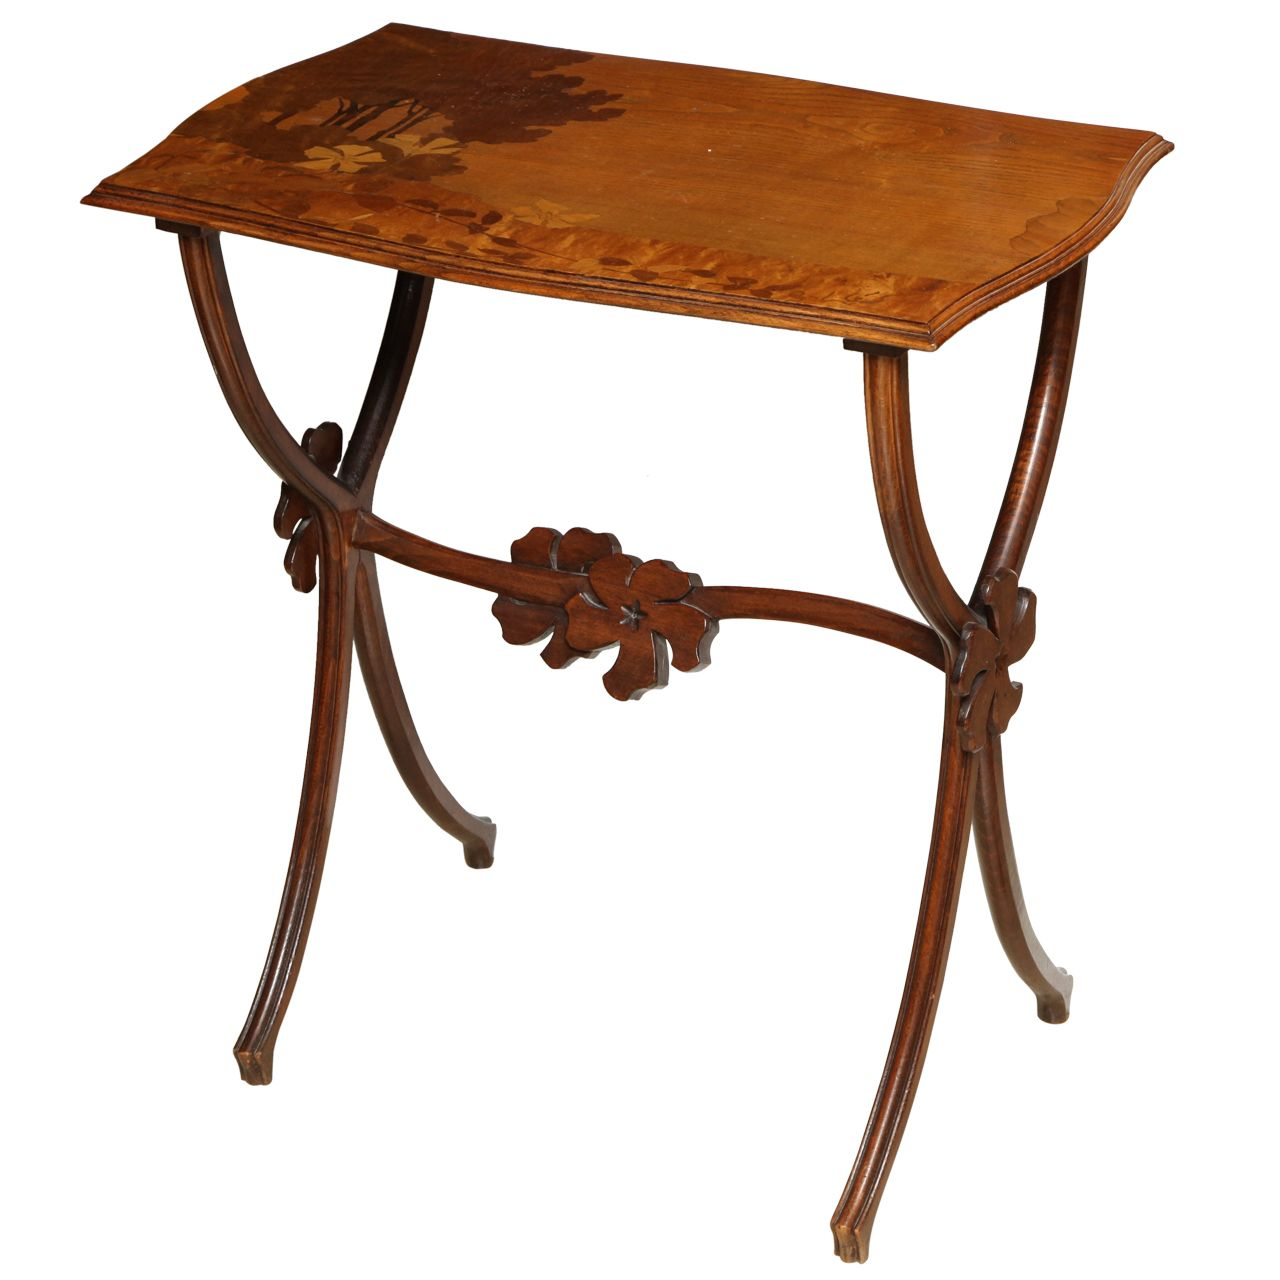 An Emile Galle marquetry inlaid table | From a unique collection of antique and modern side tables at http://www.1stdibs.com/furniture/tables/side-tables/